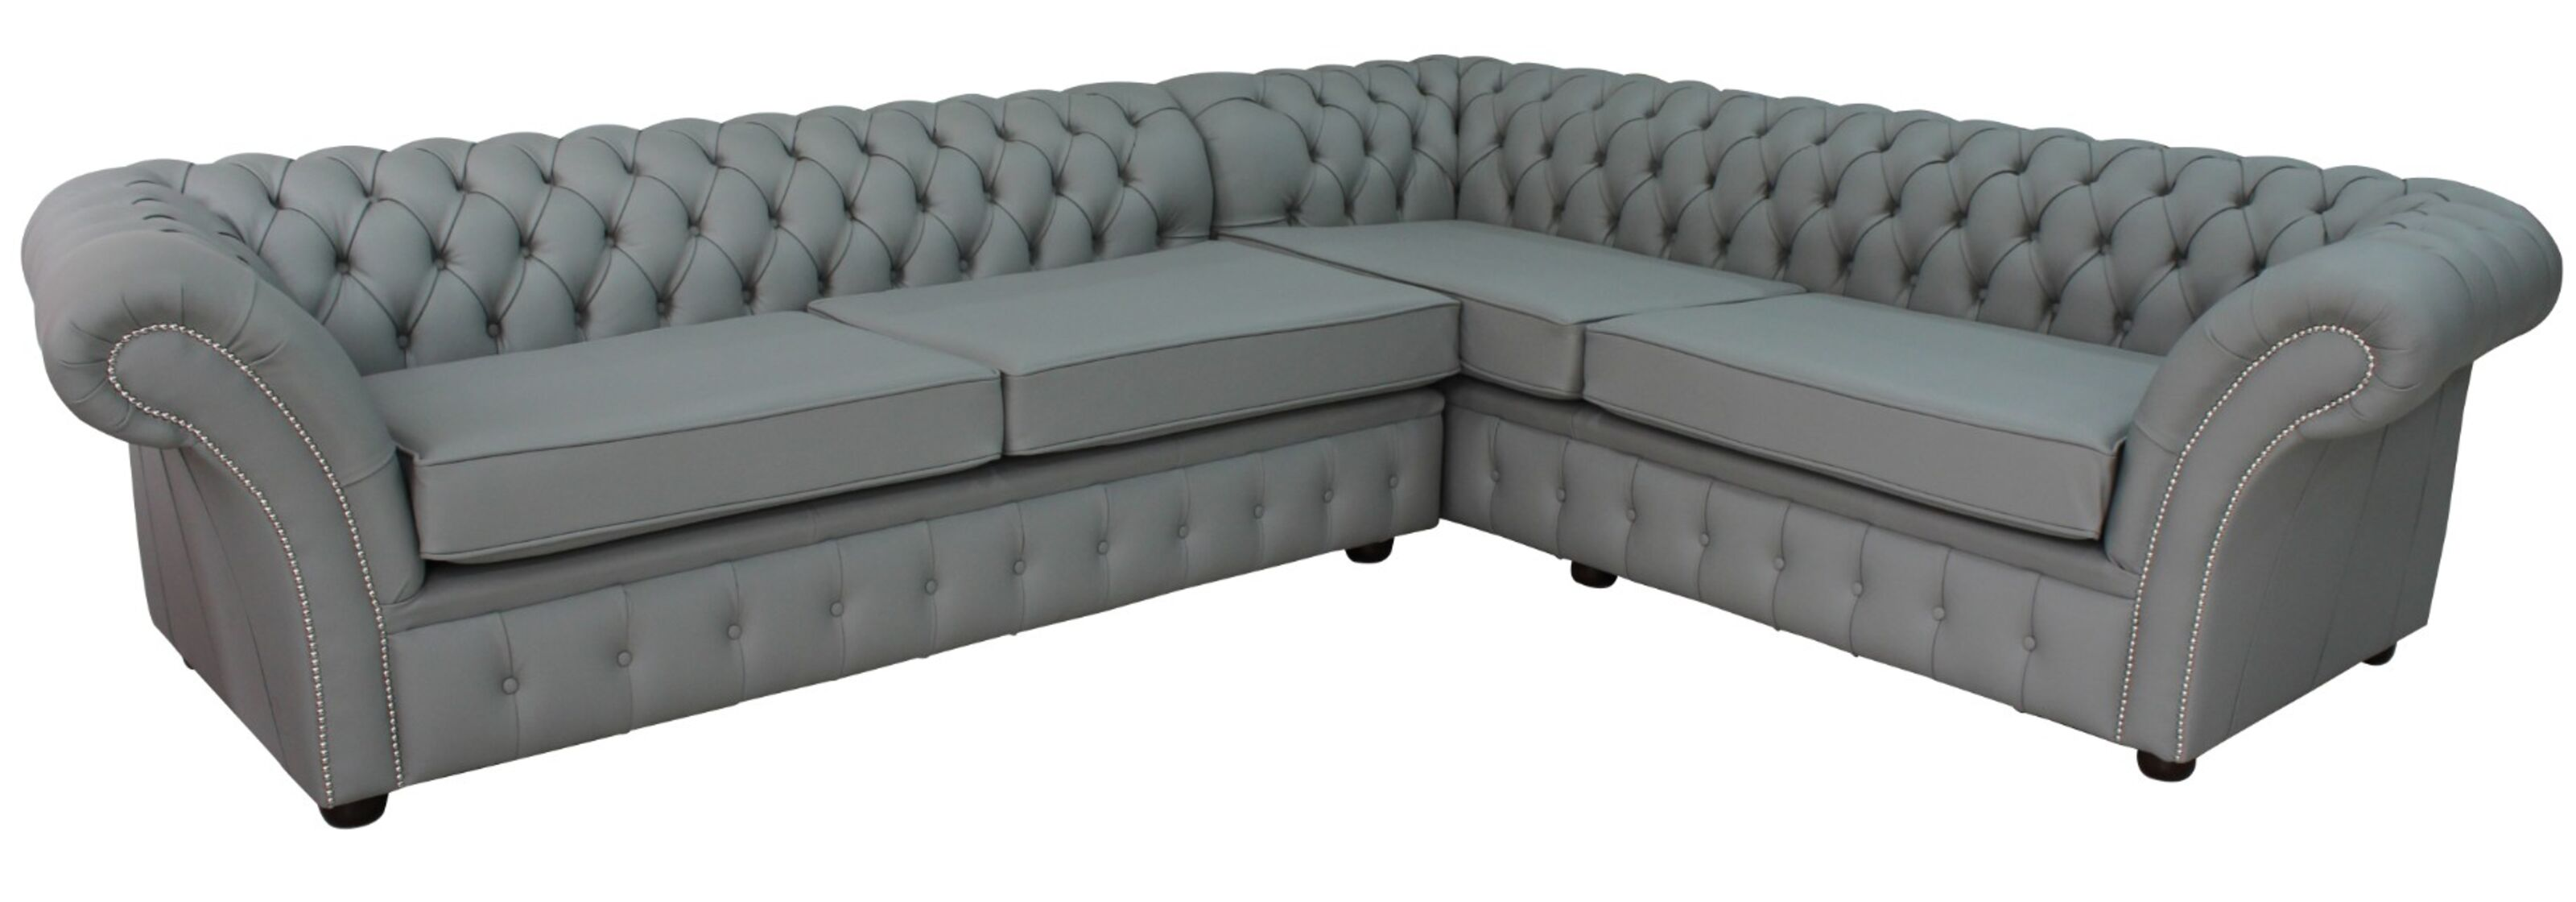 Chesterfield Balmoral Square Corner Sofa Unit Cushioned 3 Seater + Corner +  2 Seater Moon Mist Grey Leather Extra Deep